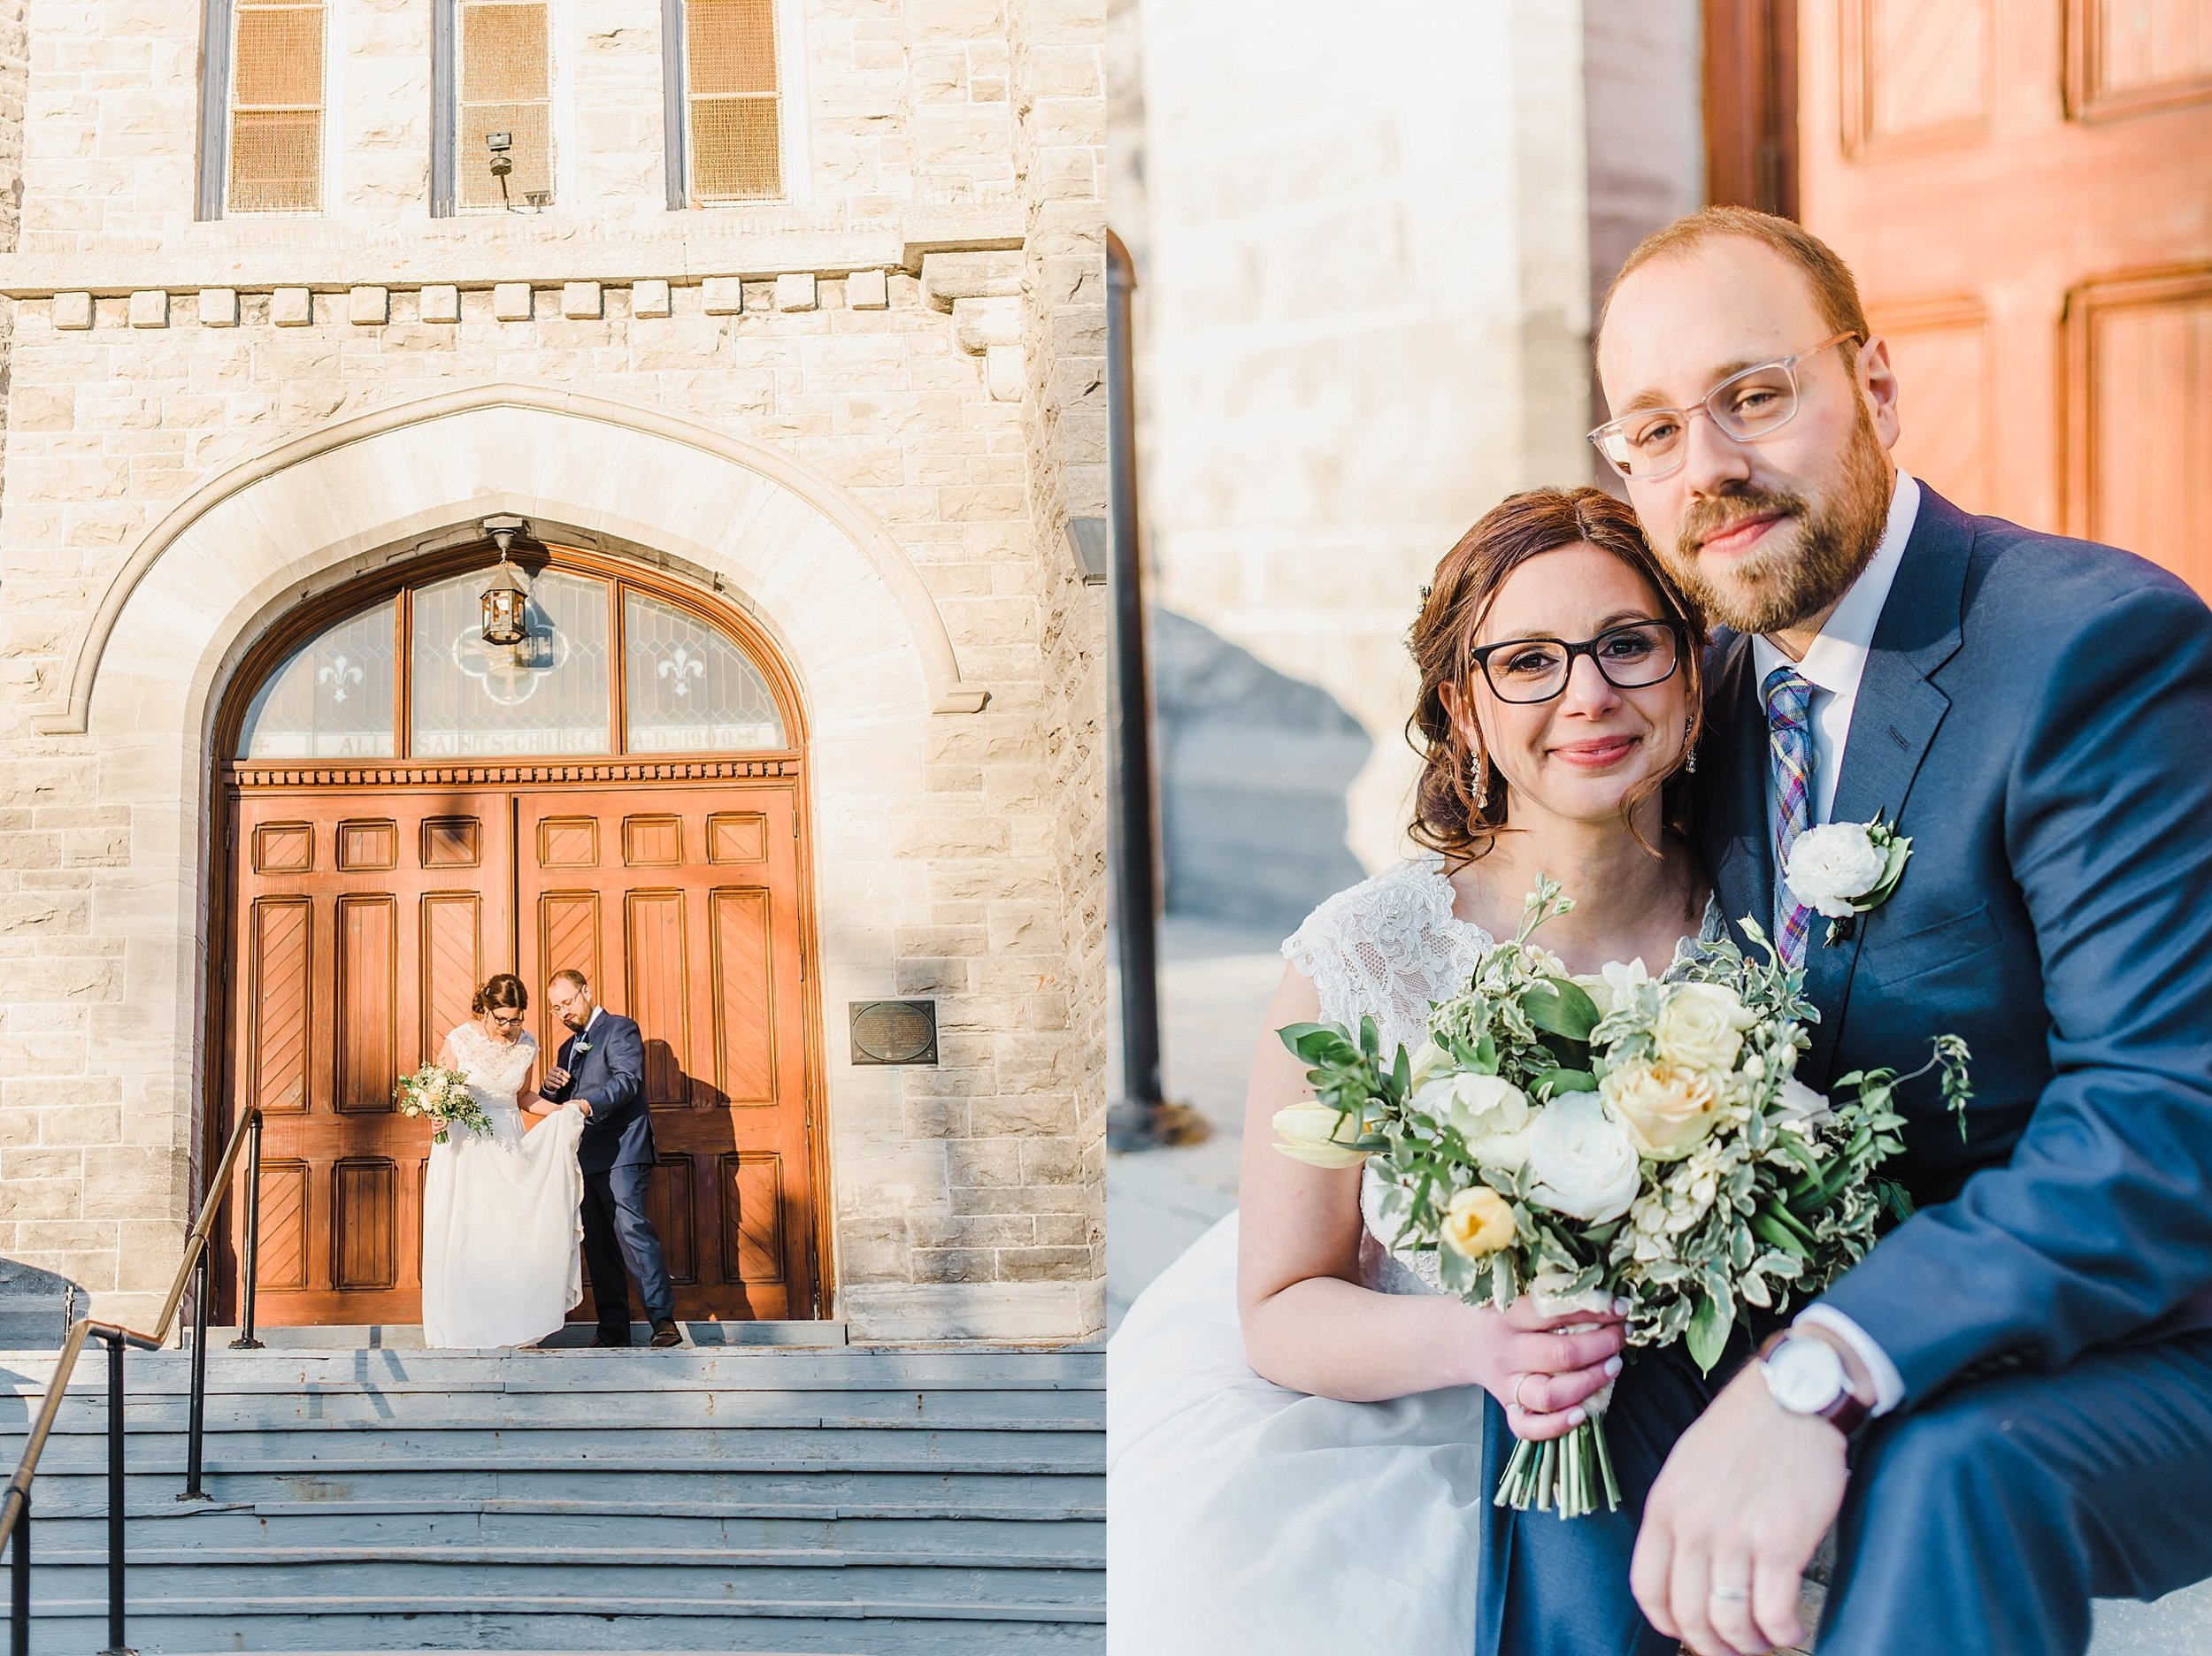 light airy indie fine art ottawa wedding photographer | Ali and Batoul Photography_0065.jpg